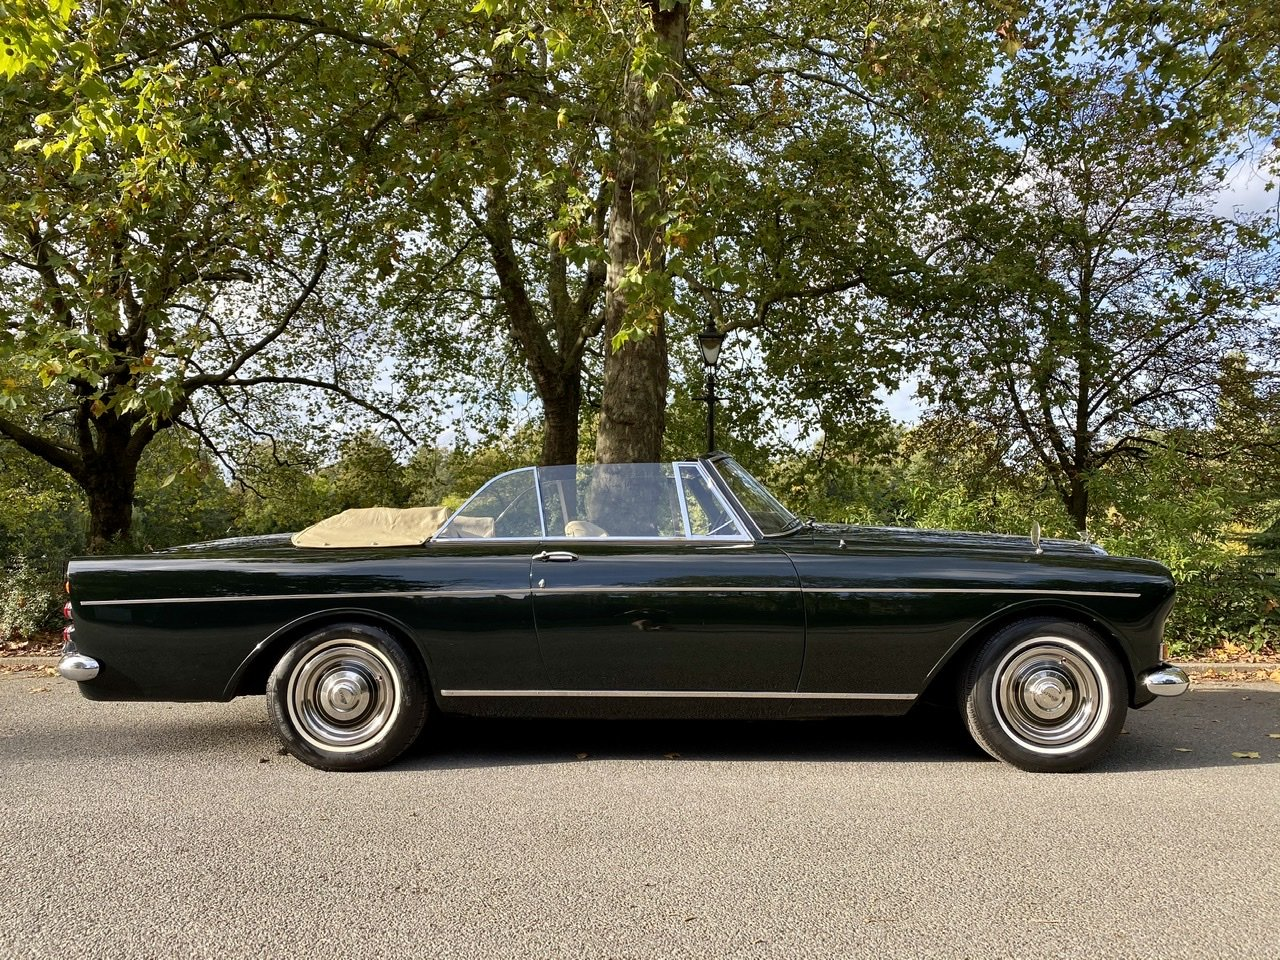 1964 Bentley S3 Continental Drop Head Coupe For Sale (picture 8 of 24)